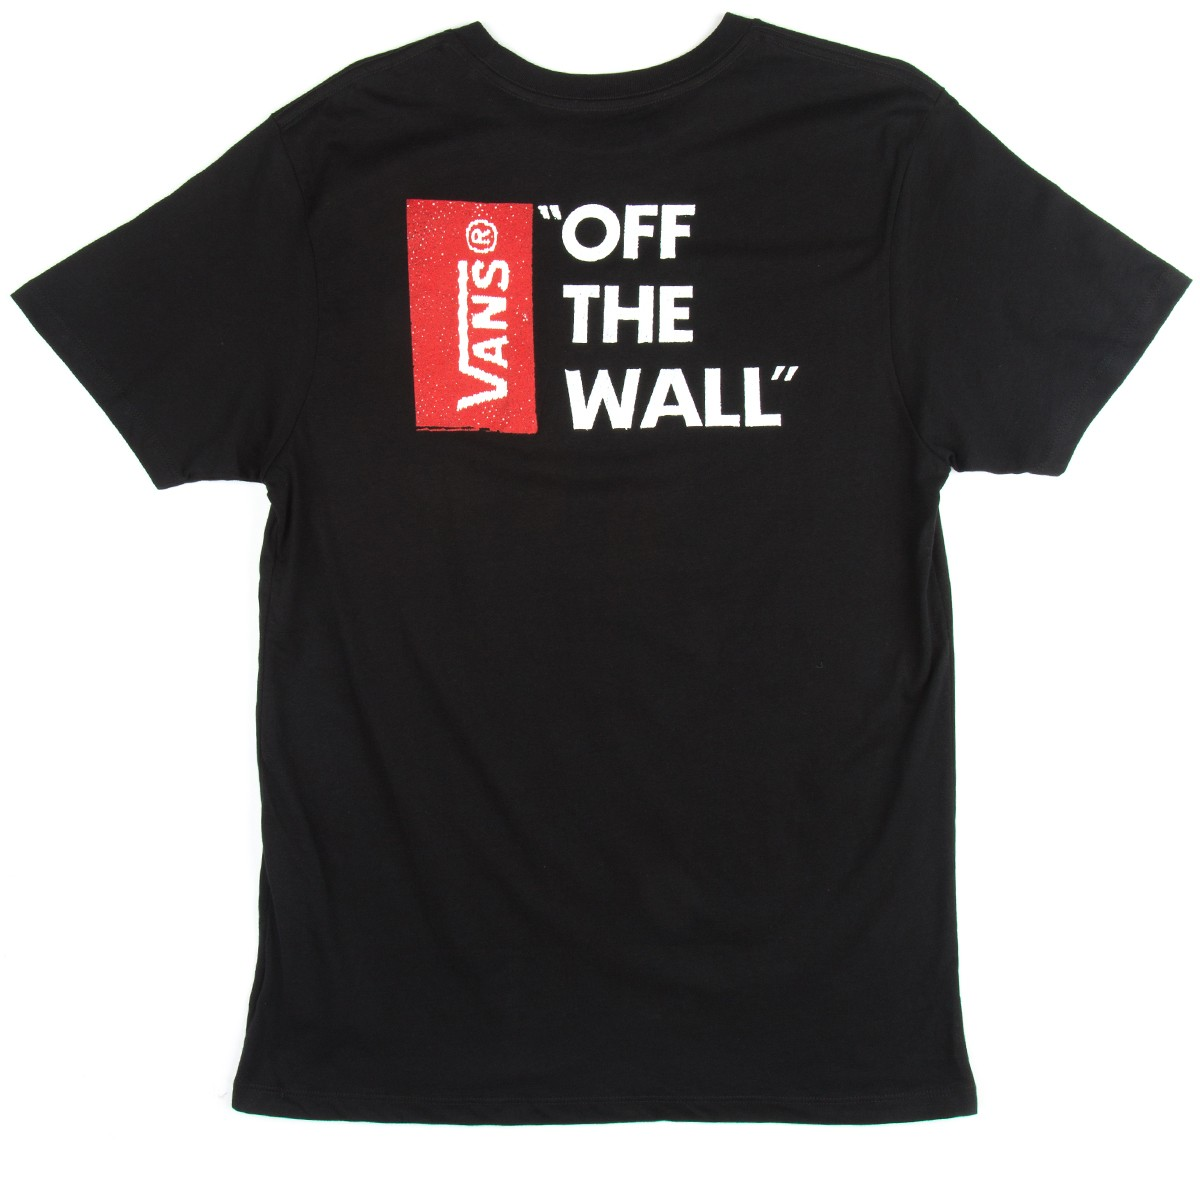 3290d56040 Vans Off The Wall III T-Shirt - Black